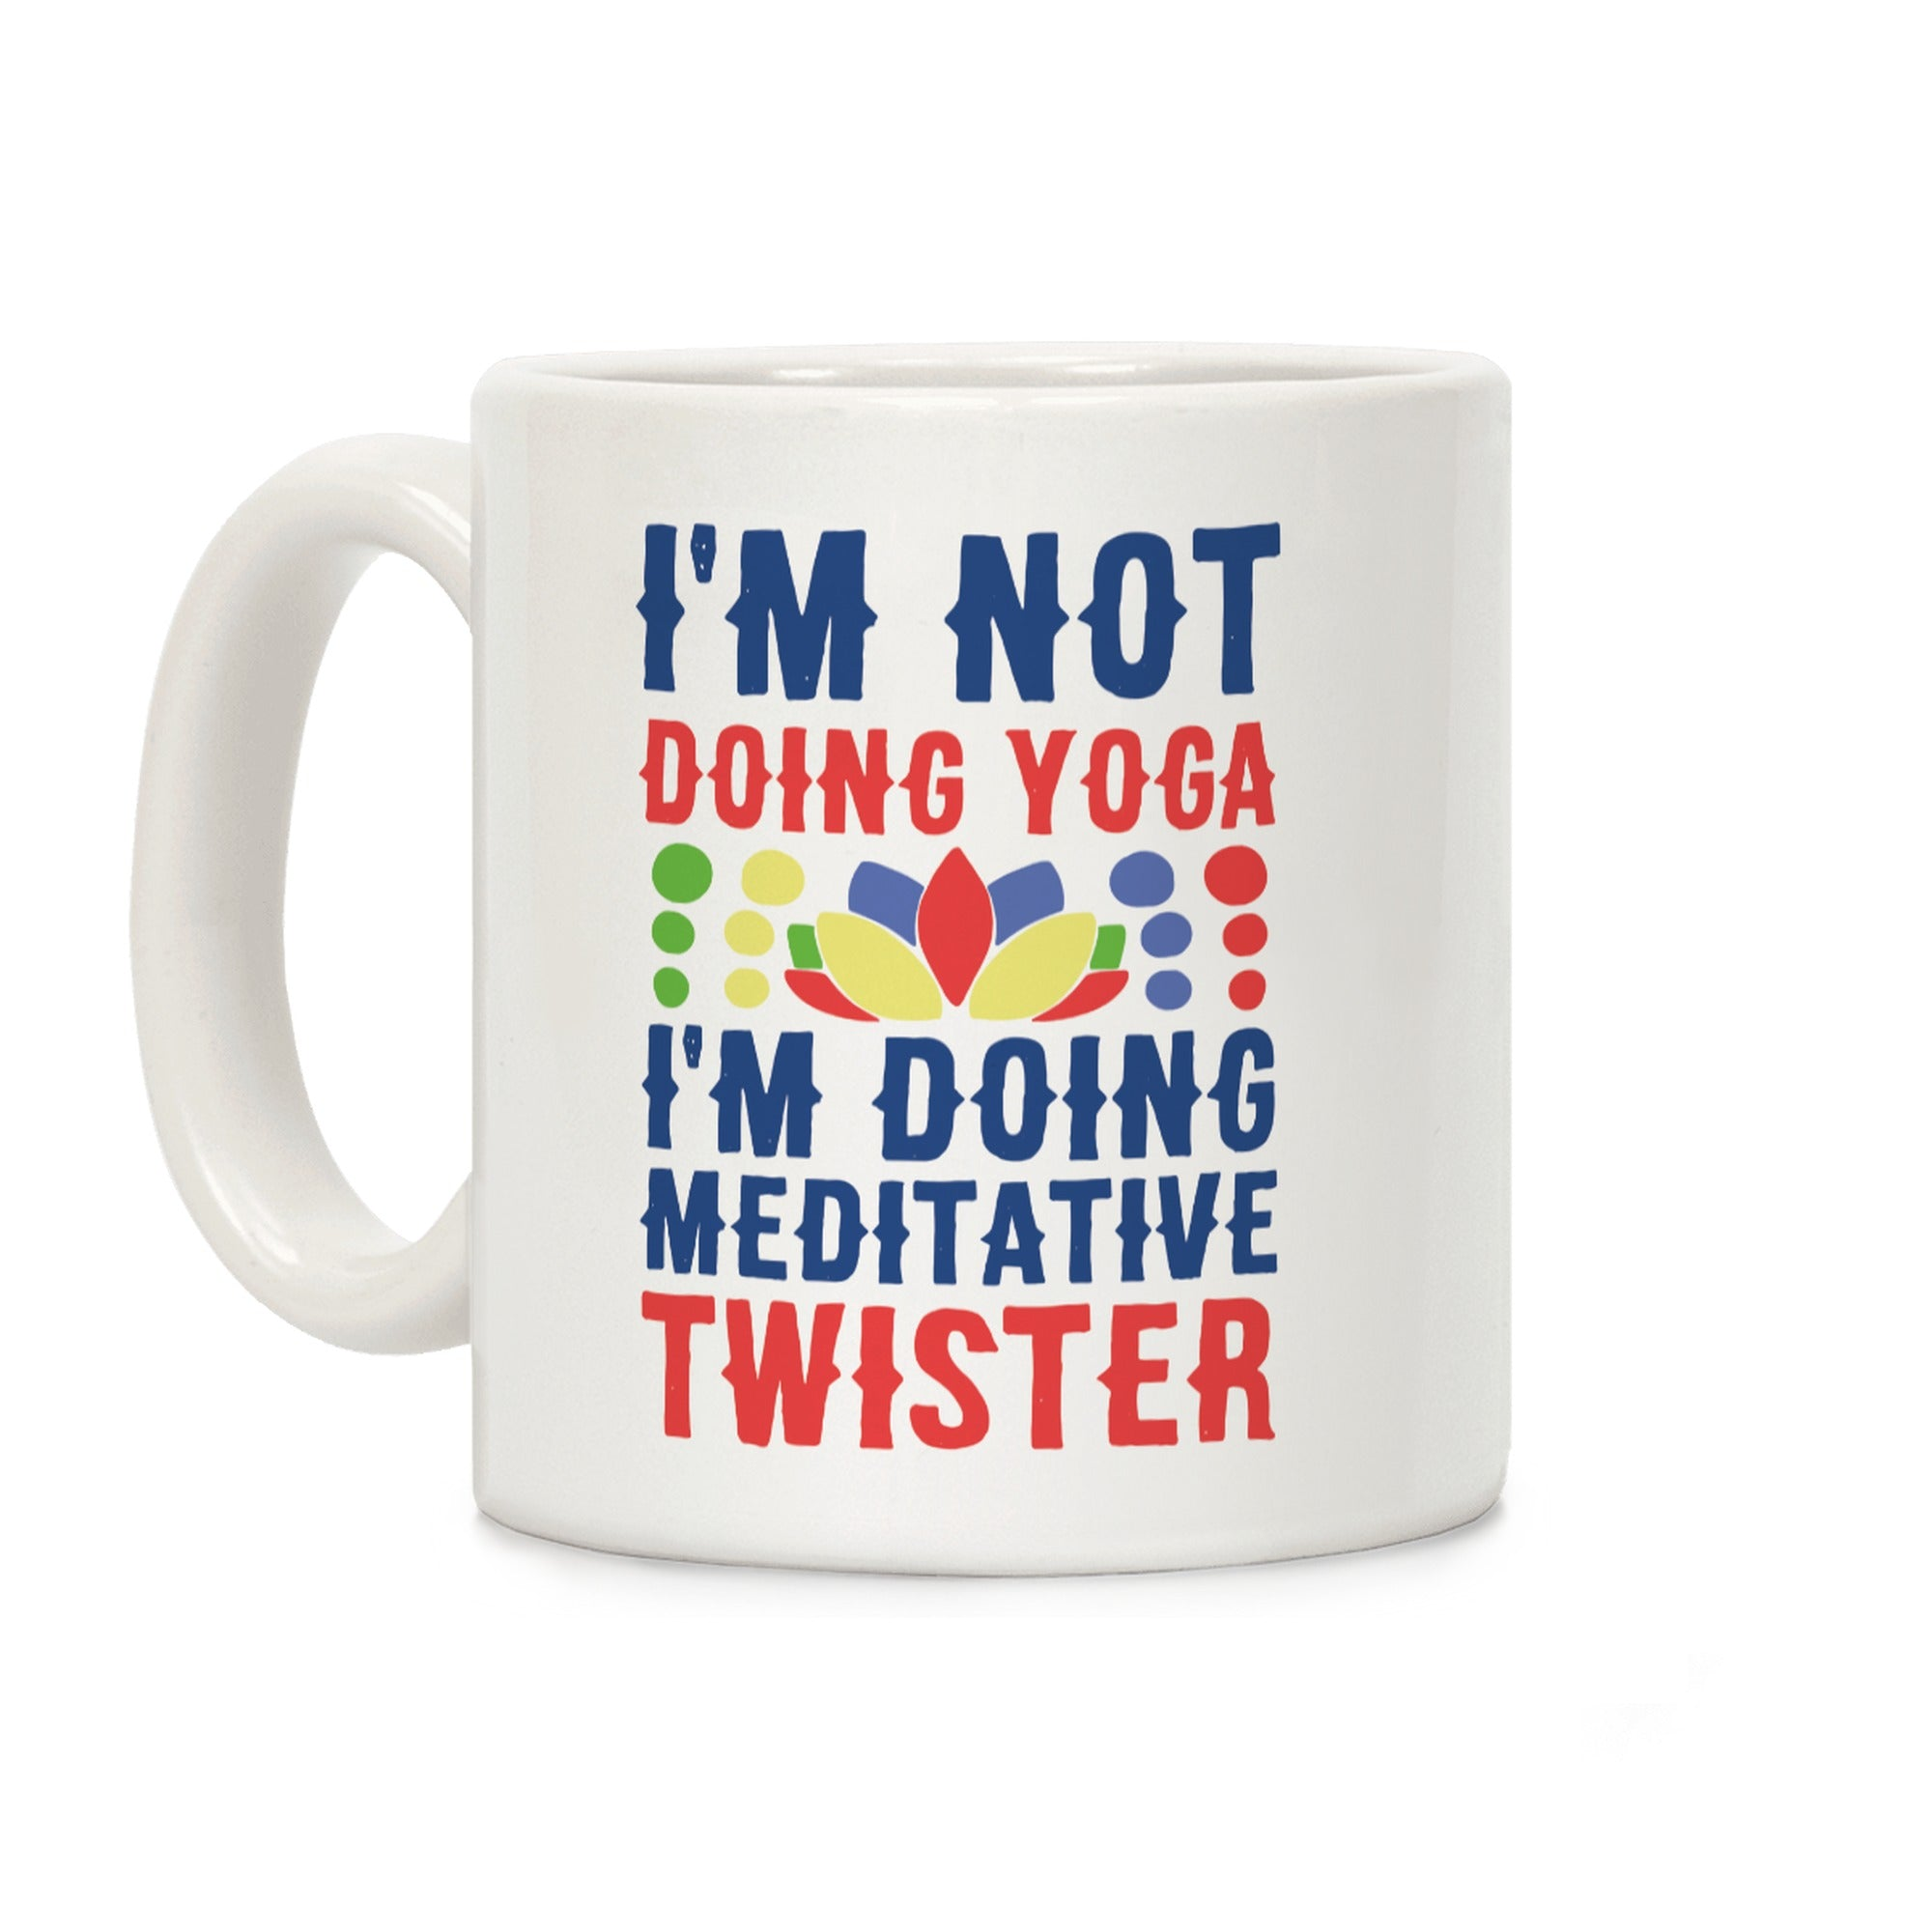 I'm Not Doing Yoga, I'm Doing Meditative Twister Ceramic Coffee Mug